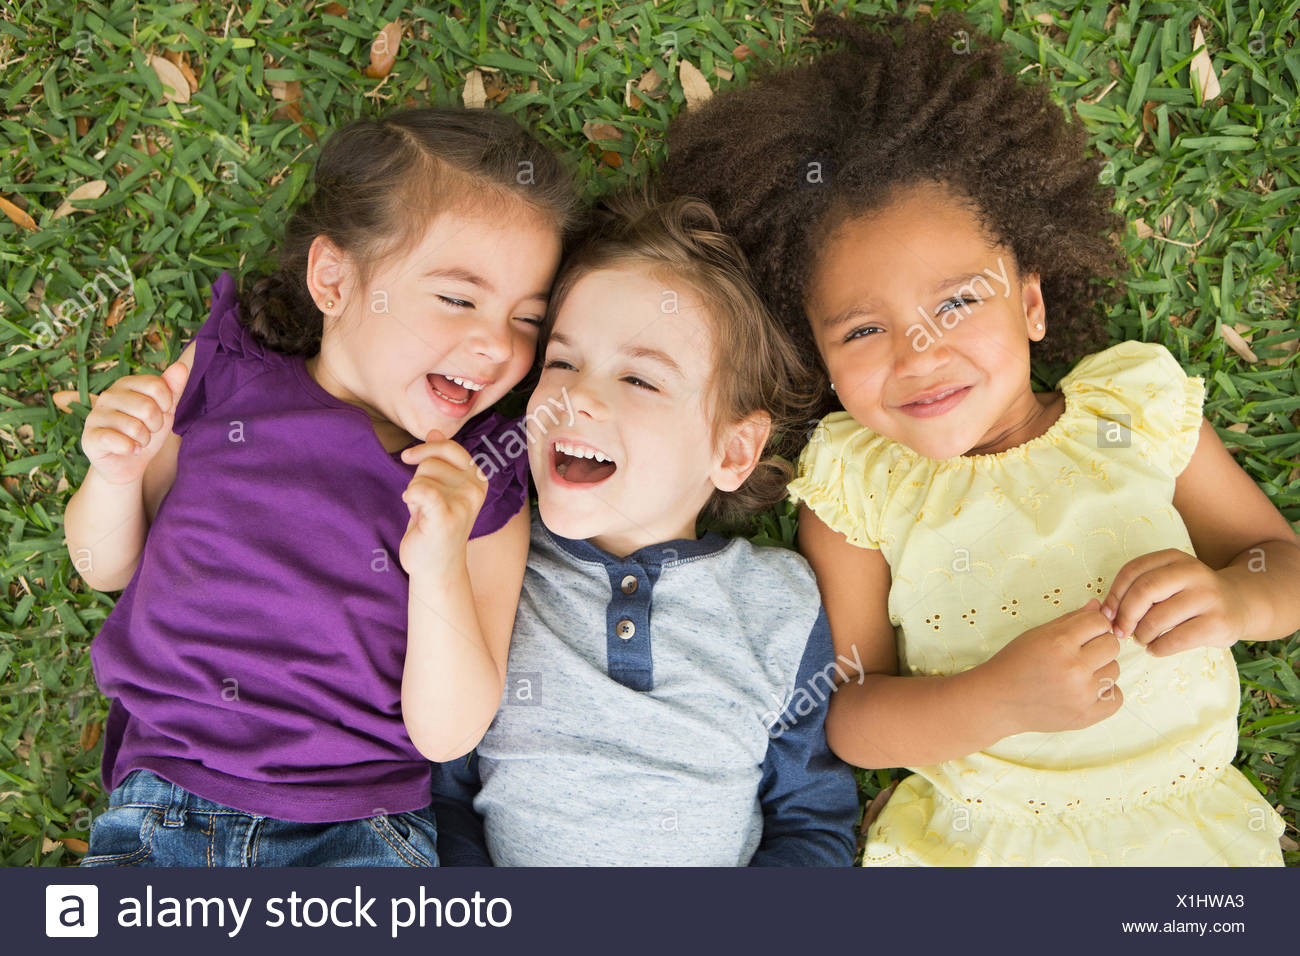 Three children lying on their backs on the grass, looking up and laughing. - Stock Image